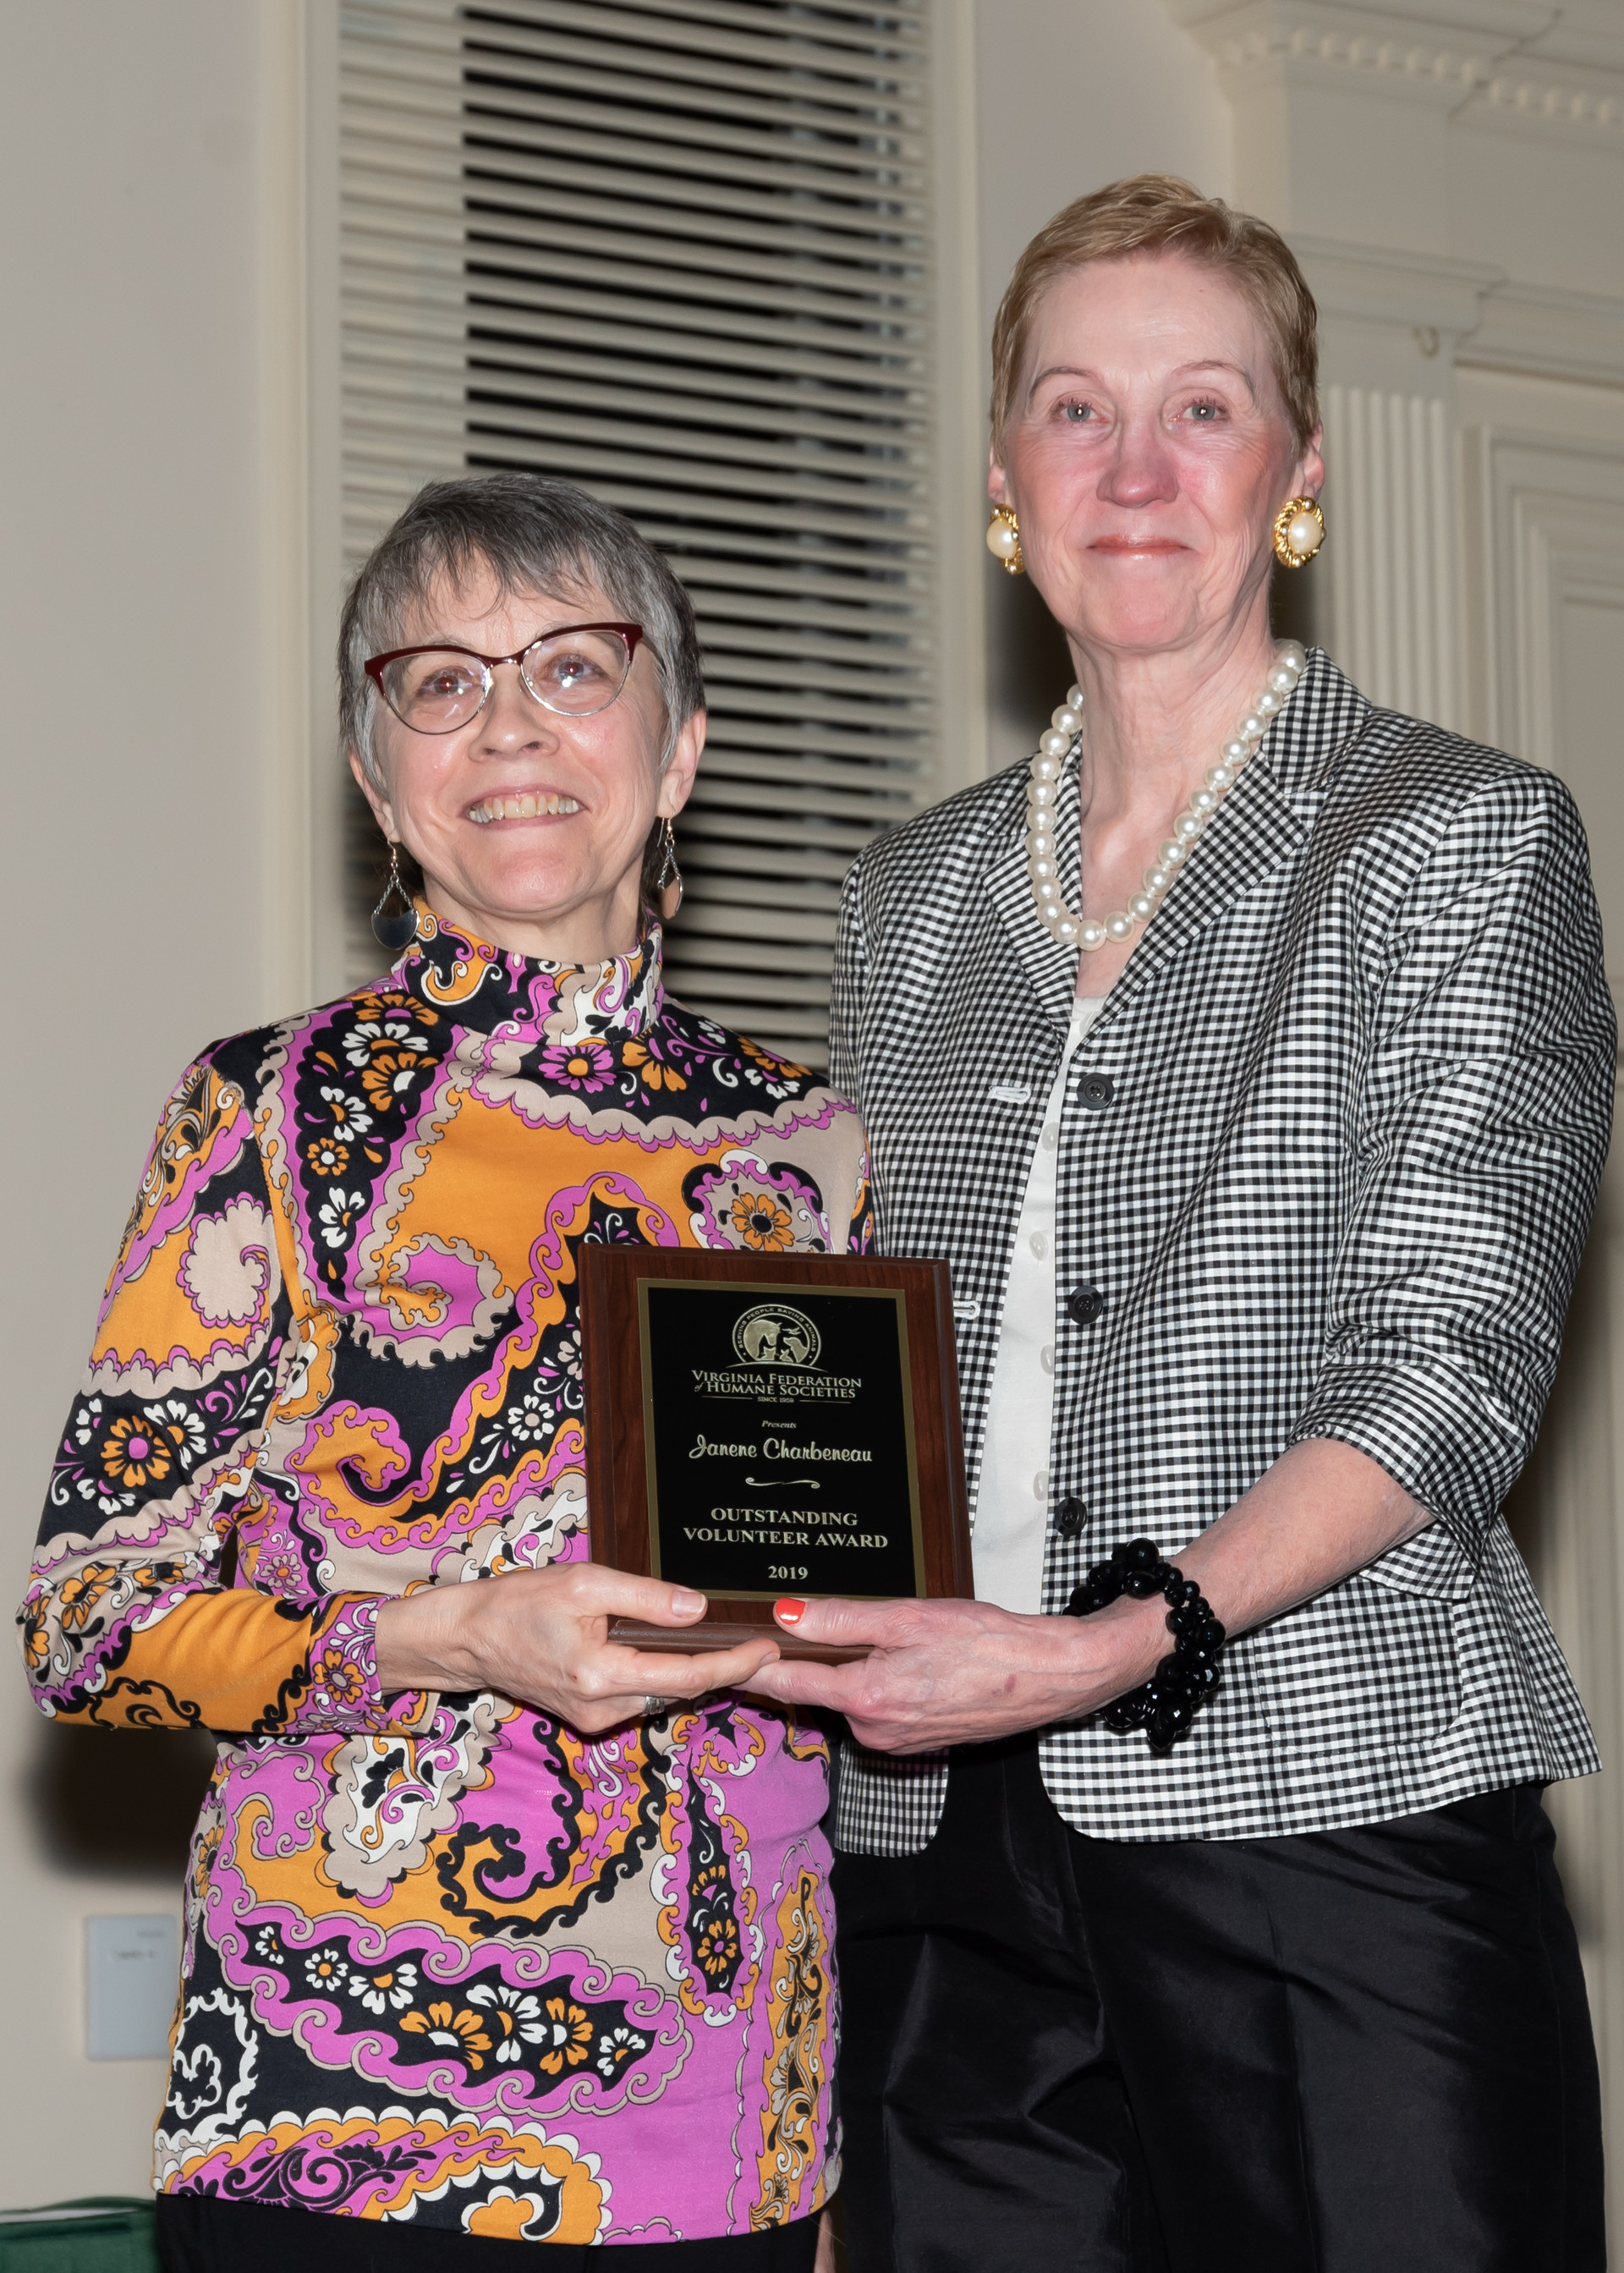 2019 VFHS Outstanding Volunteer Award